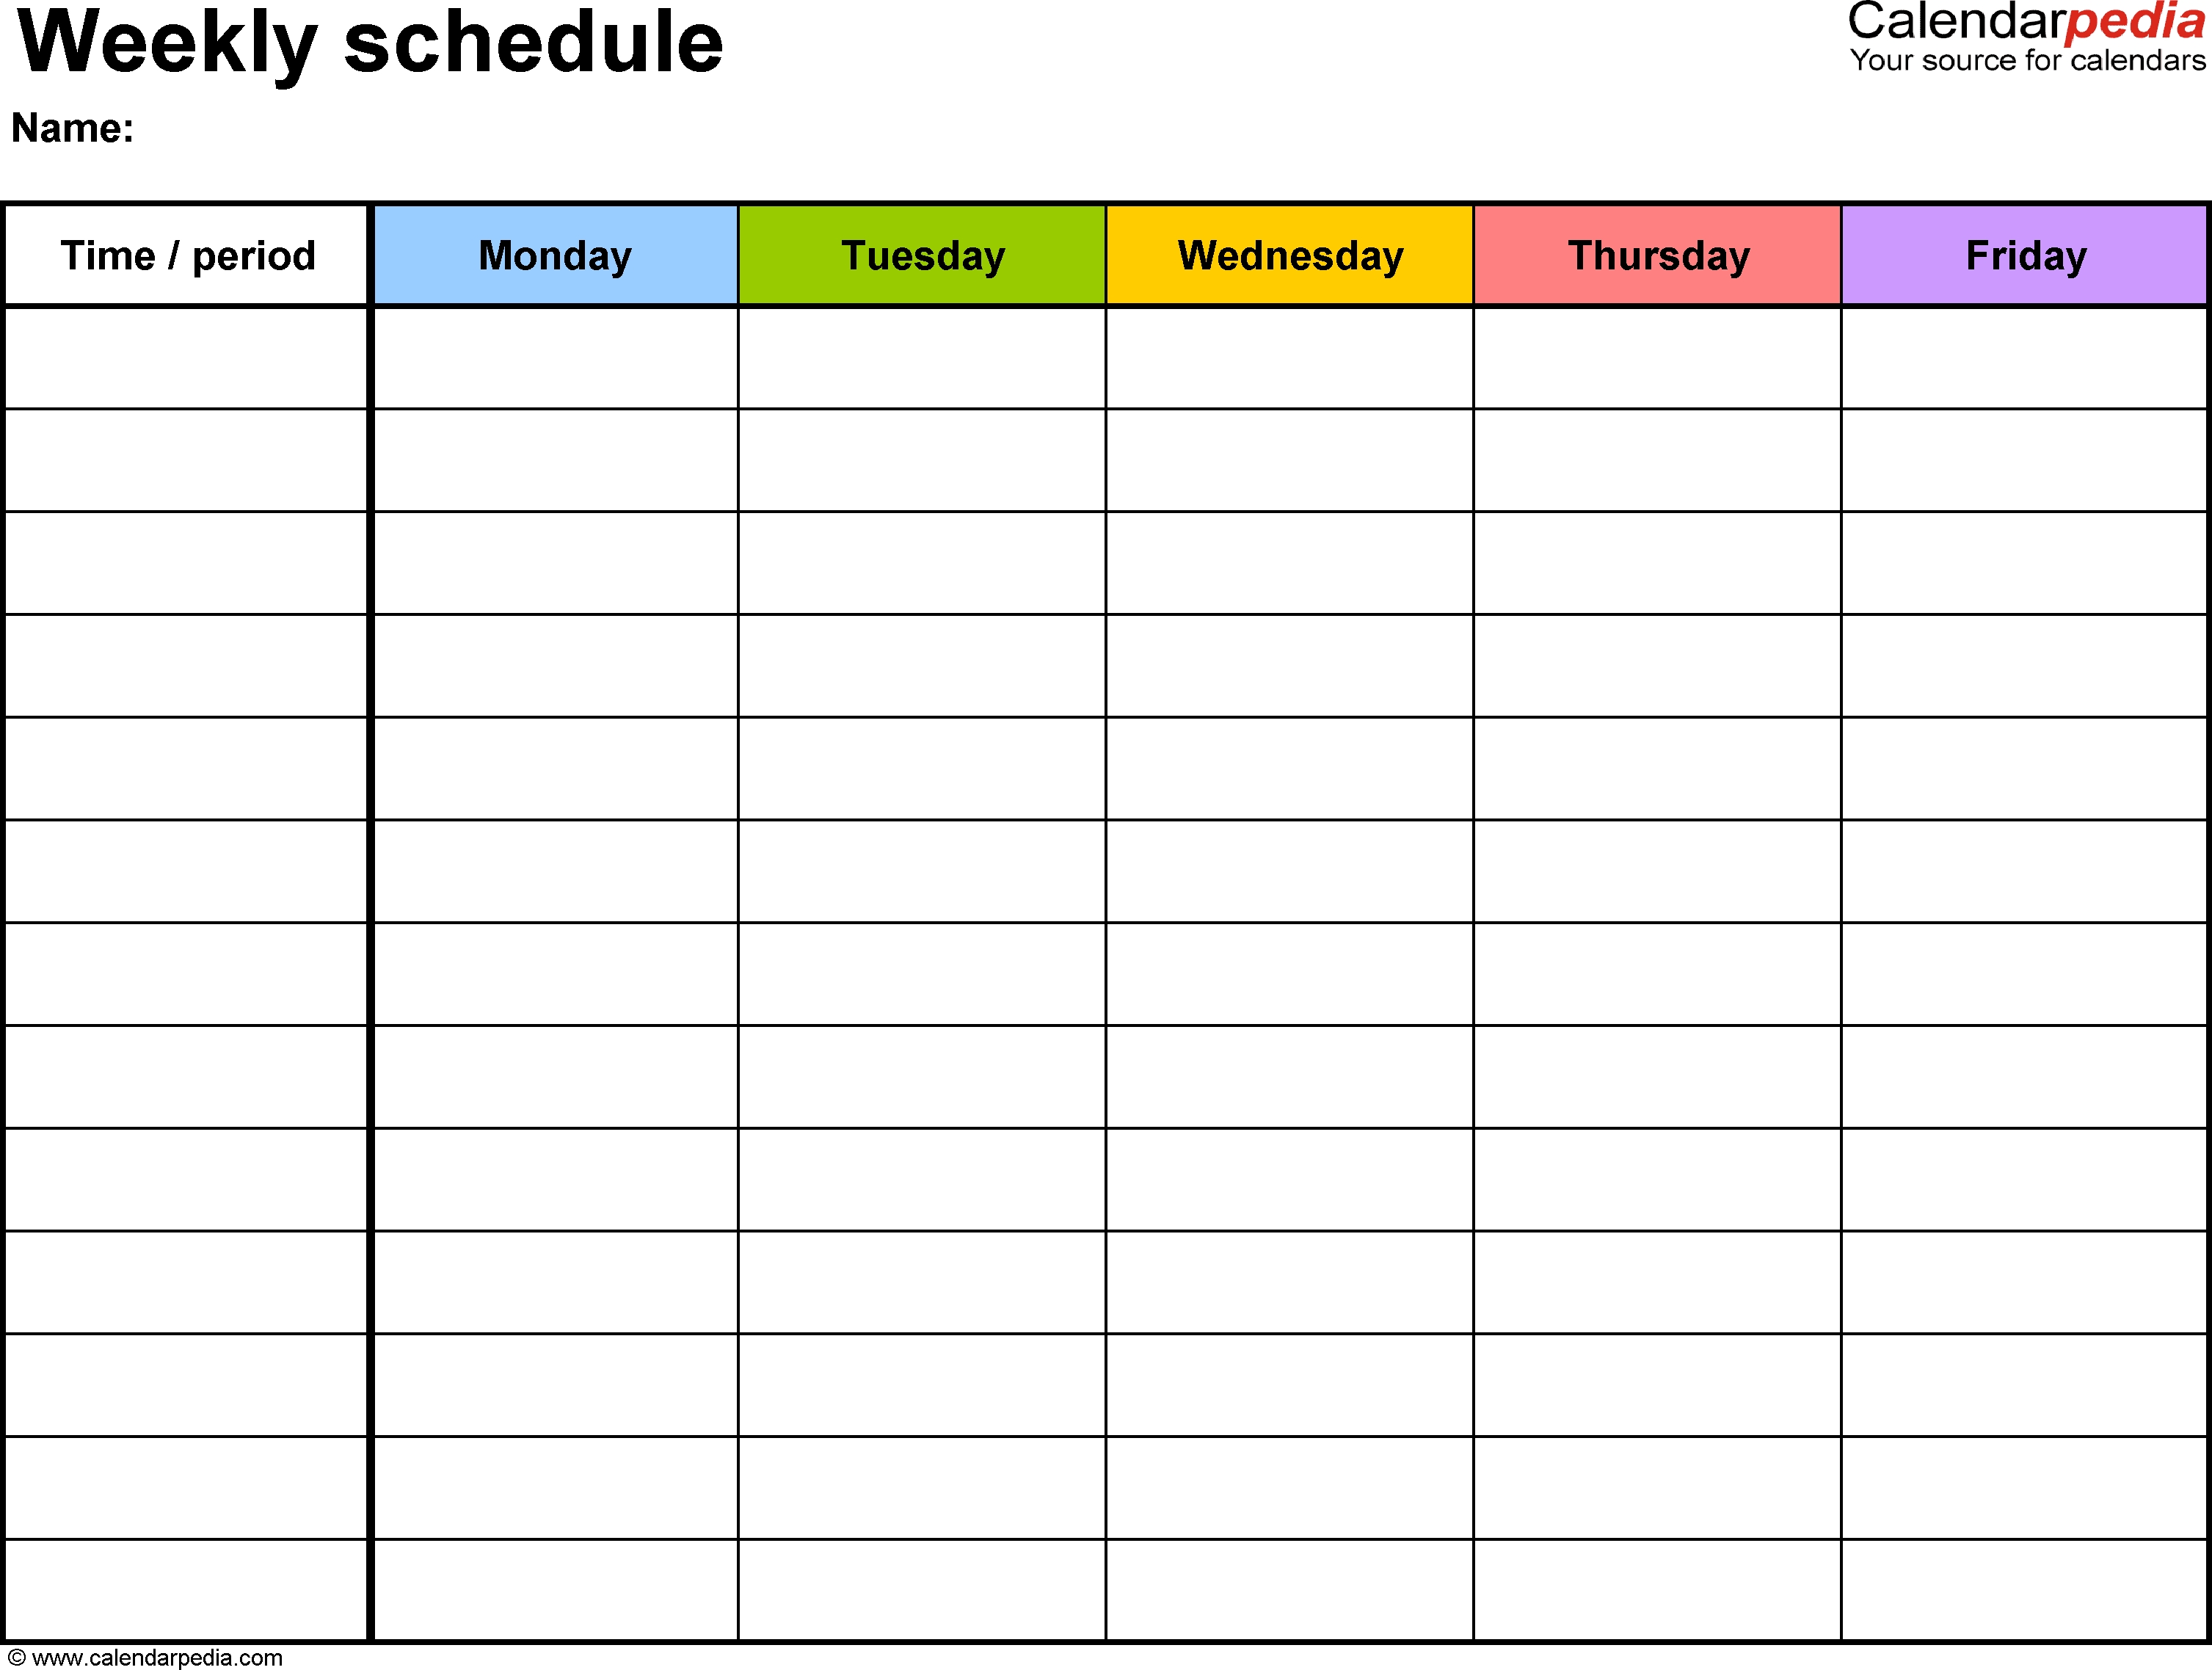 Free Weekly Schedule Templates For Word - 18 Templates  Printable 5 Day Monthly Calendar